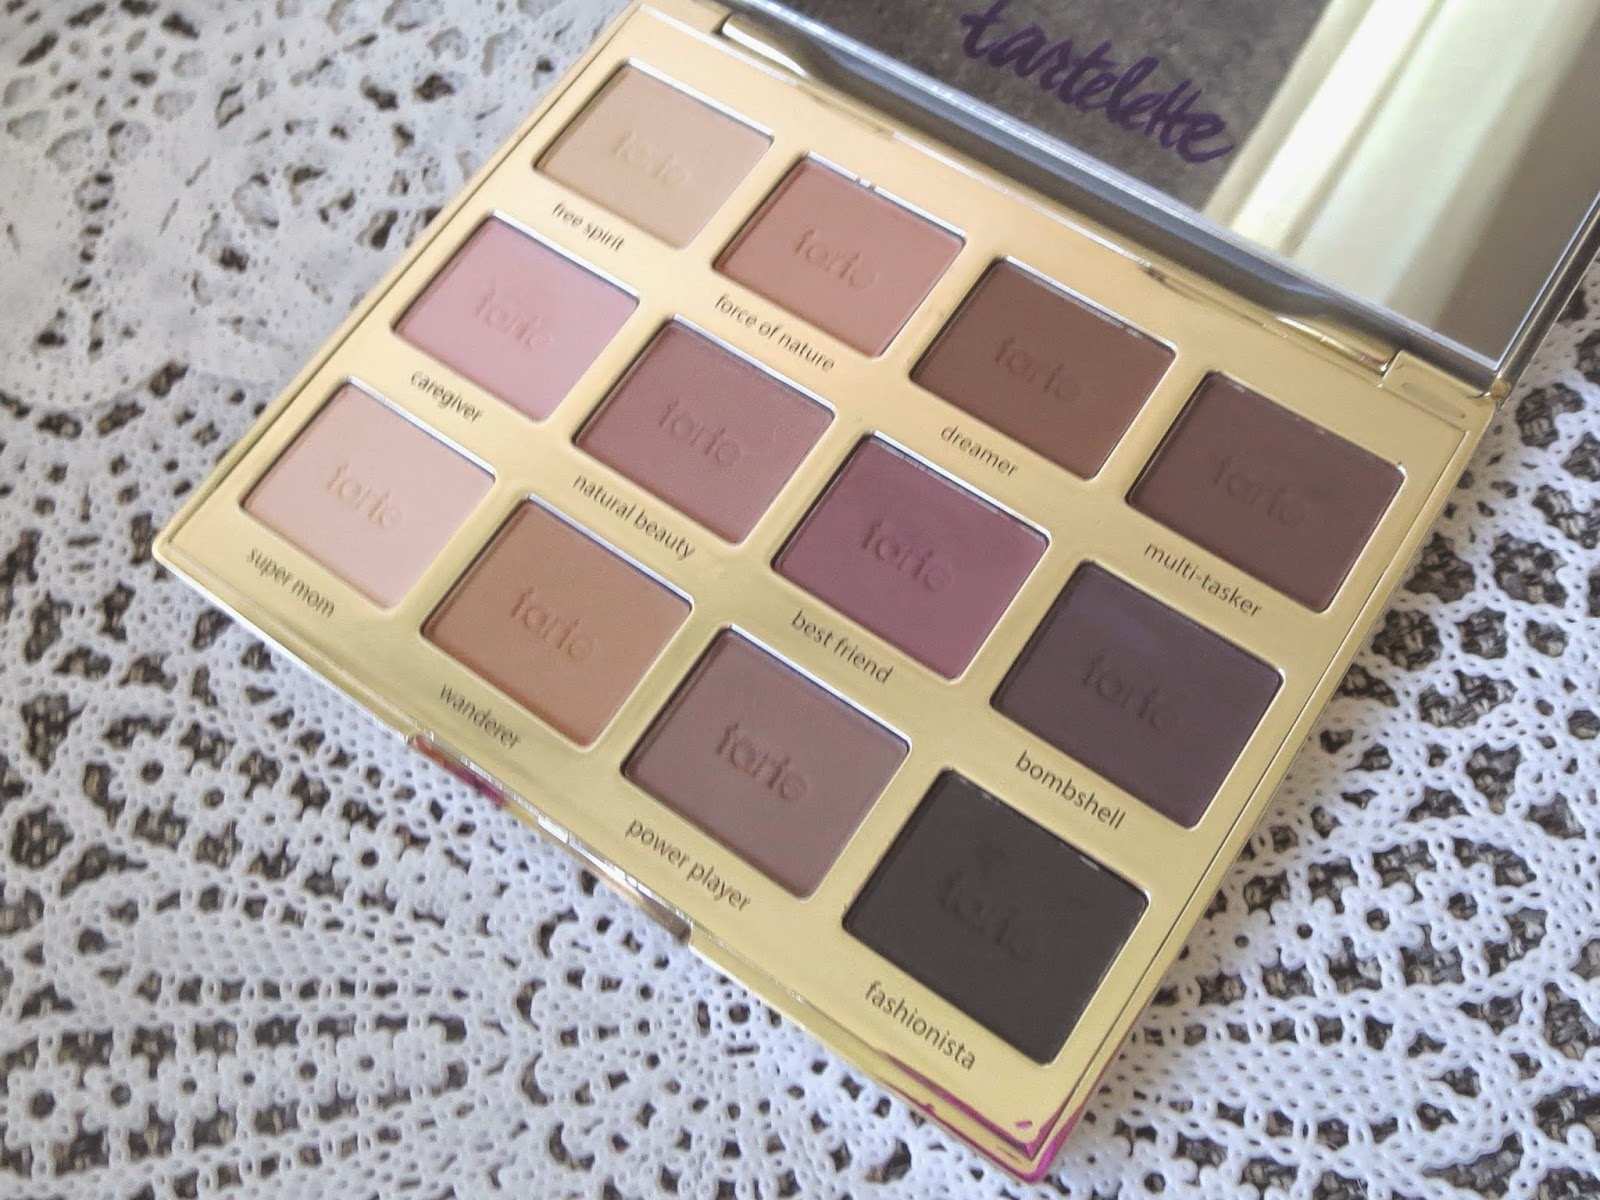 a picture of the Tarte Tartelette Eyeshadow Palette